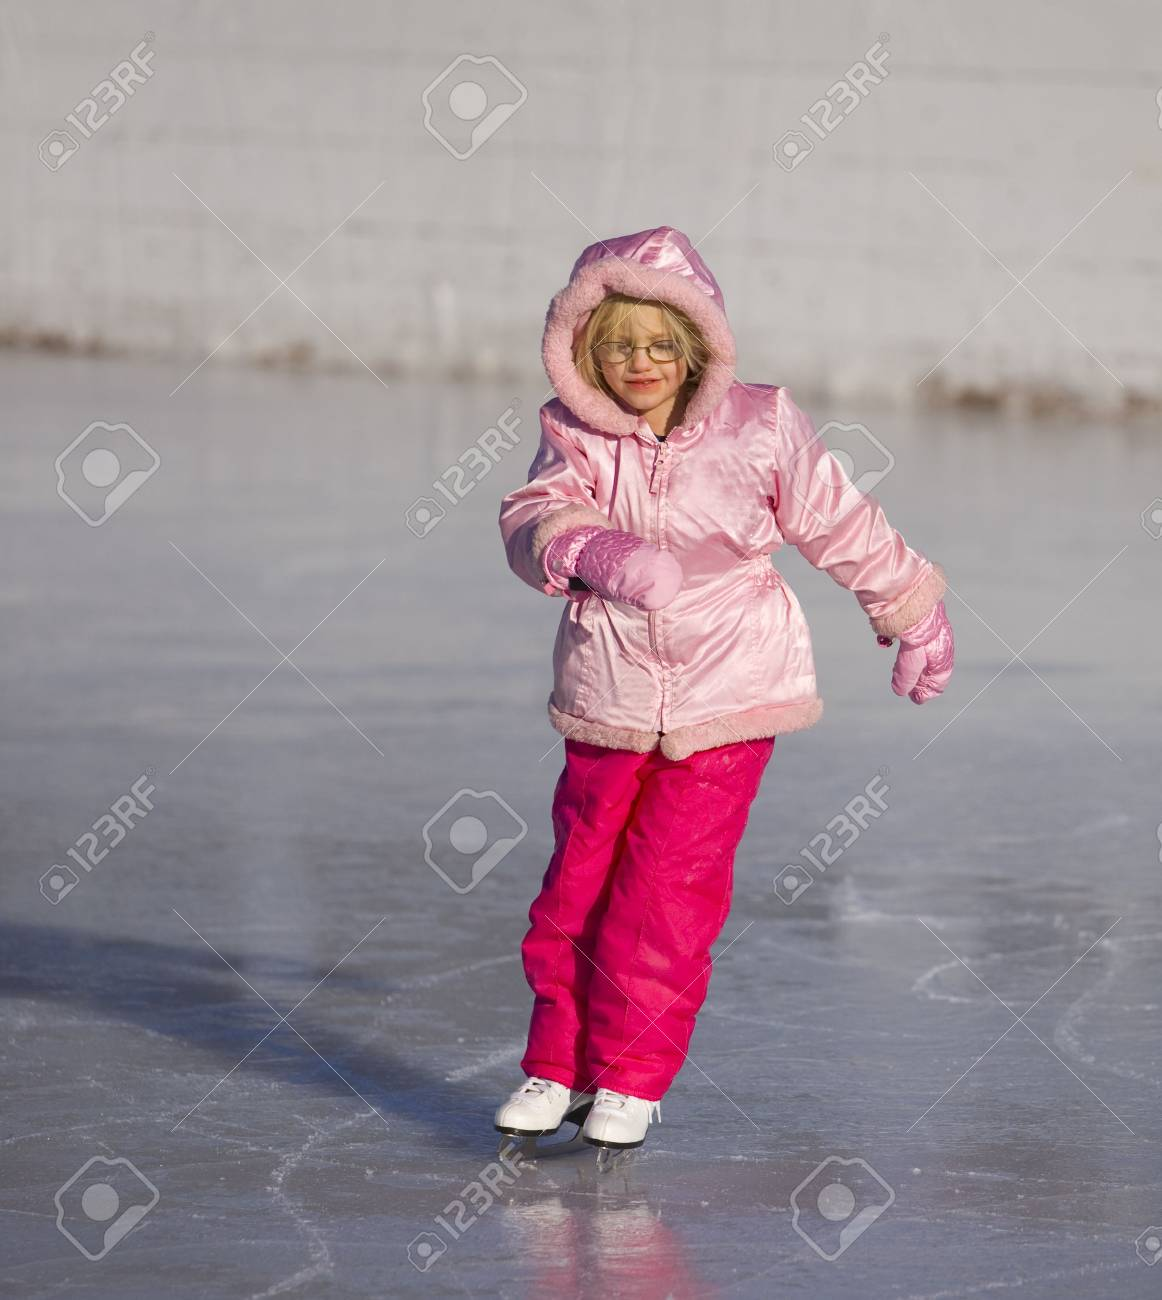 Child in pink ice skating and leaning into a curve Stock Photo - 3980189